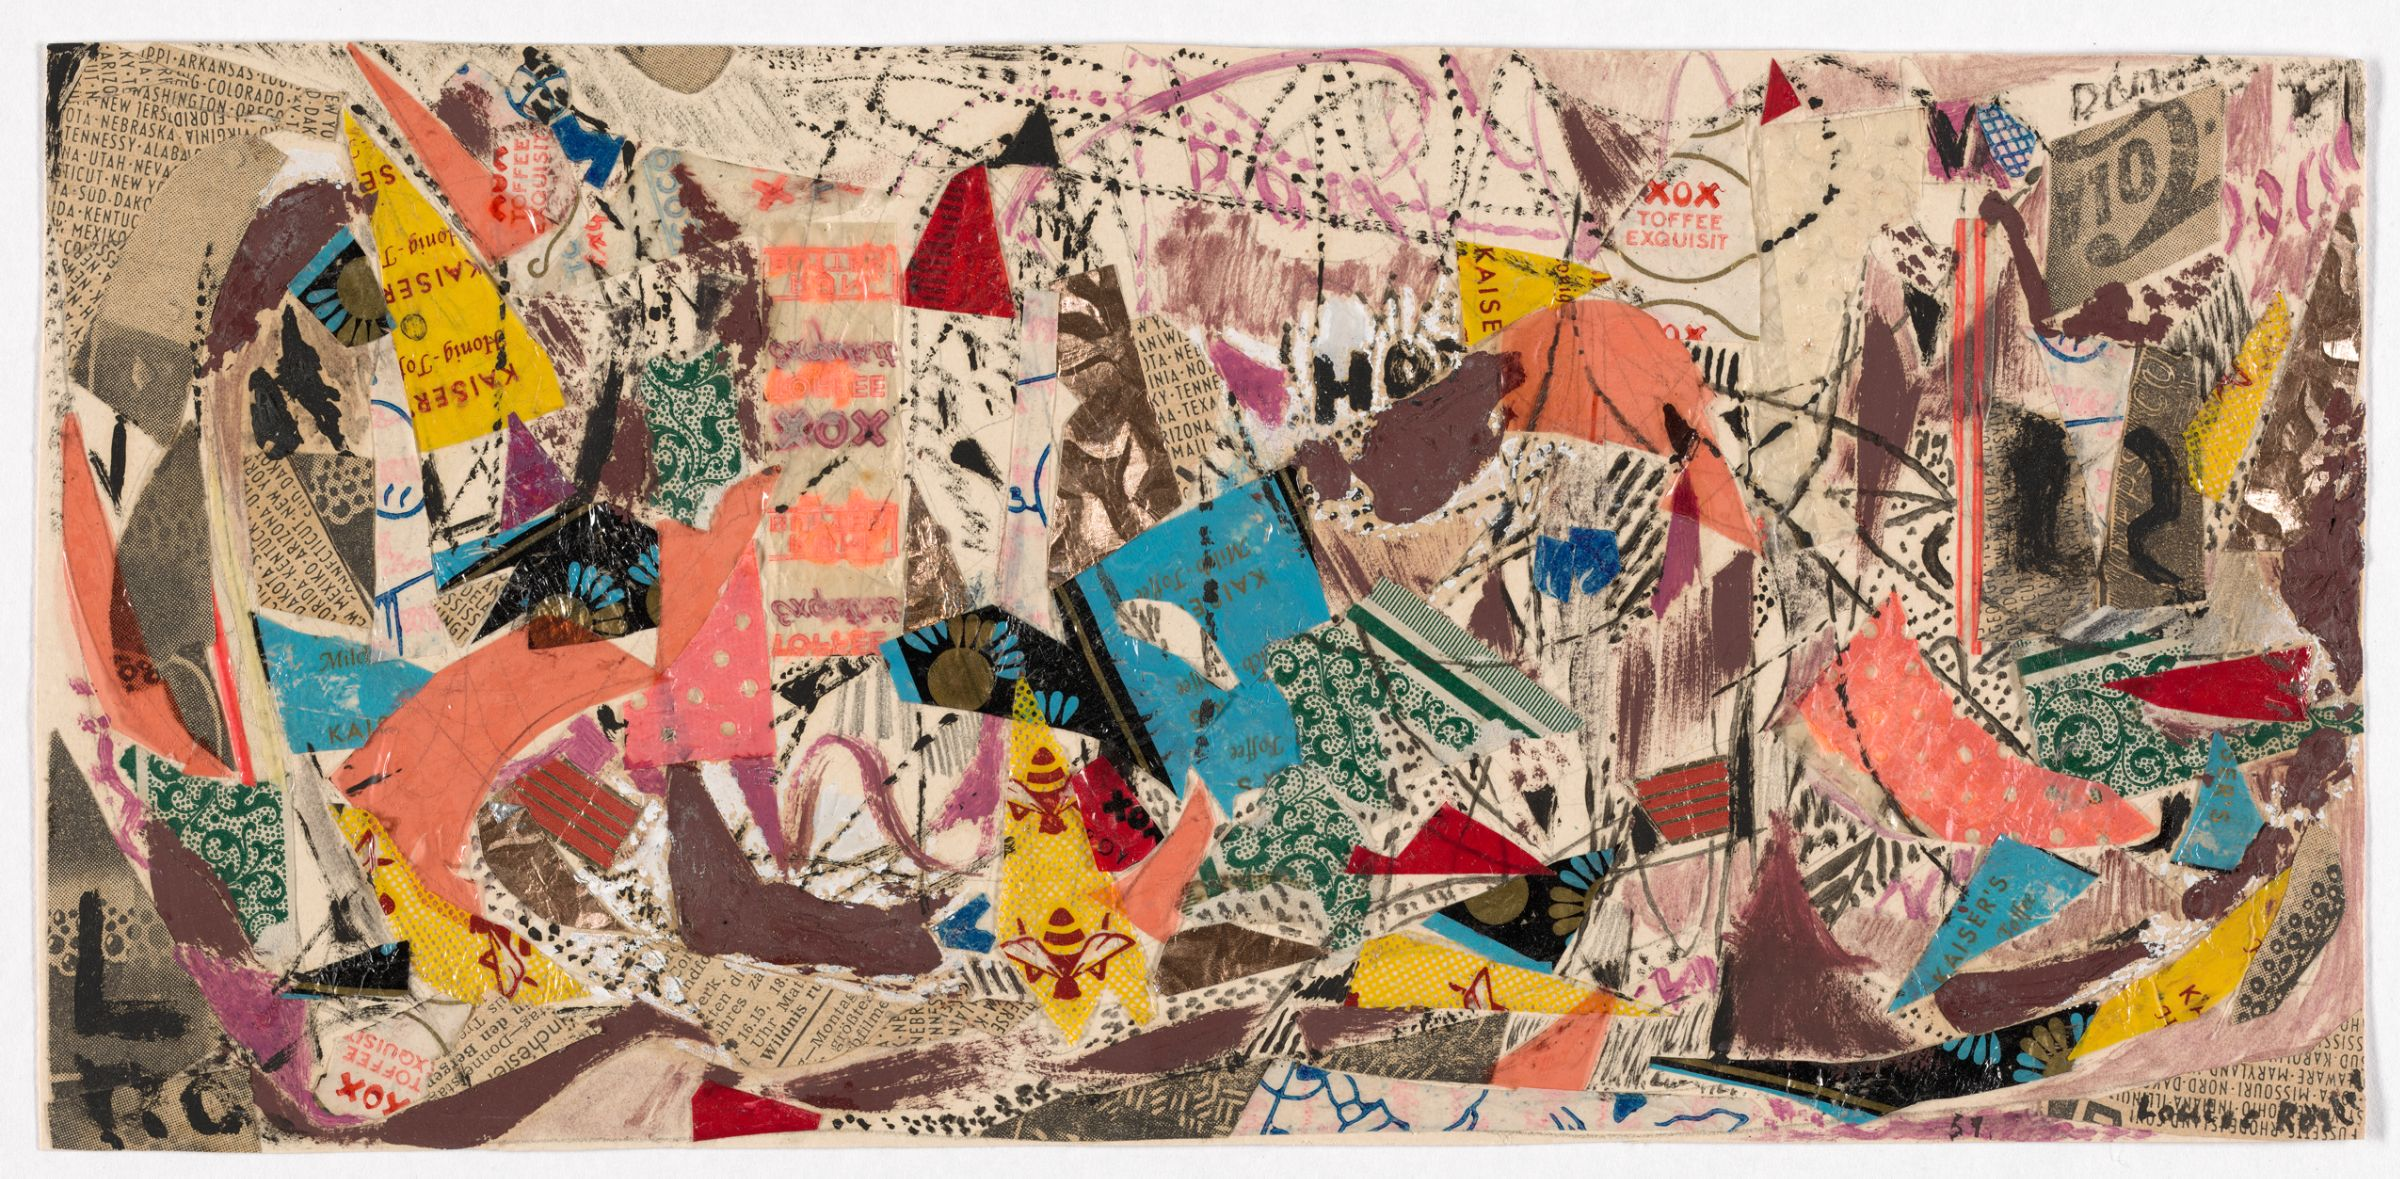 Louise Rösler, Street, 1951. Collage of cut printed paper, metal foil, cellophane, wax paper, opaque watercolor, and oil paint on wove paper. Harvard Art Museums/Busch-Reisinger Museum, Purchase through the generosity of Renke B. Thye, 2017.125.